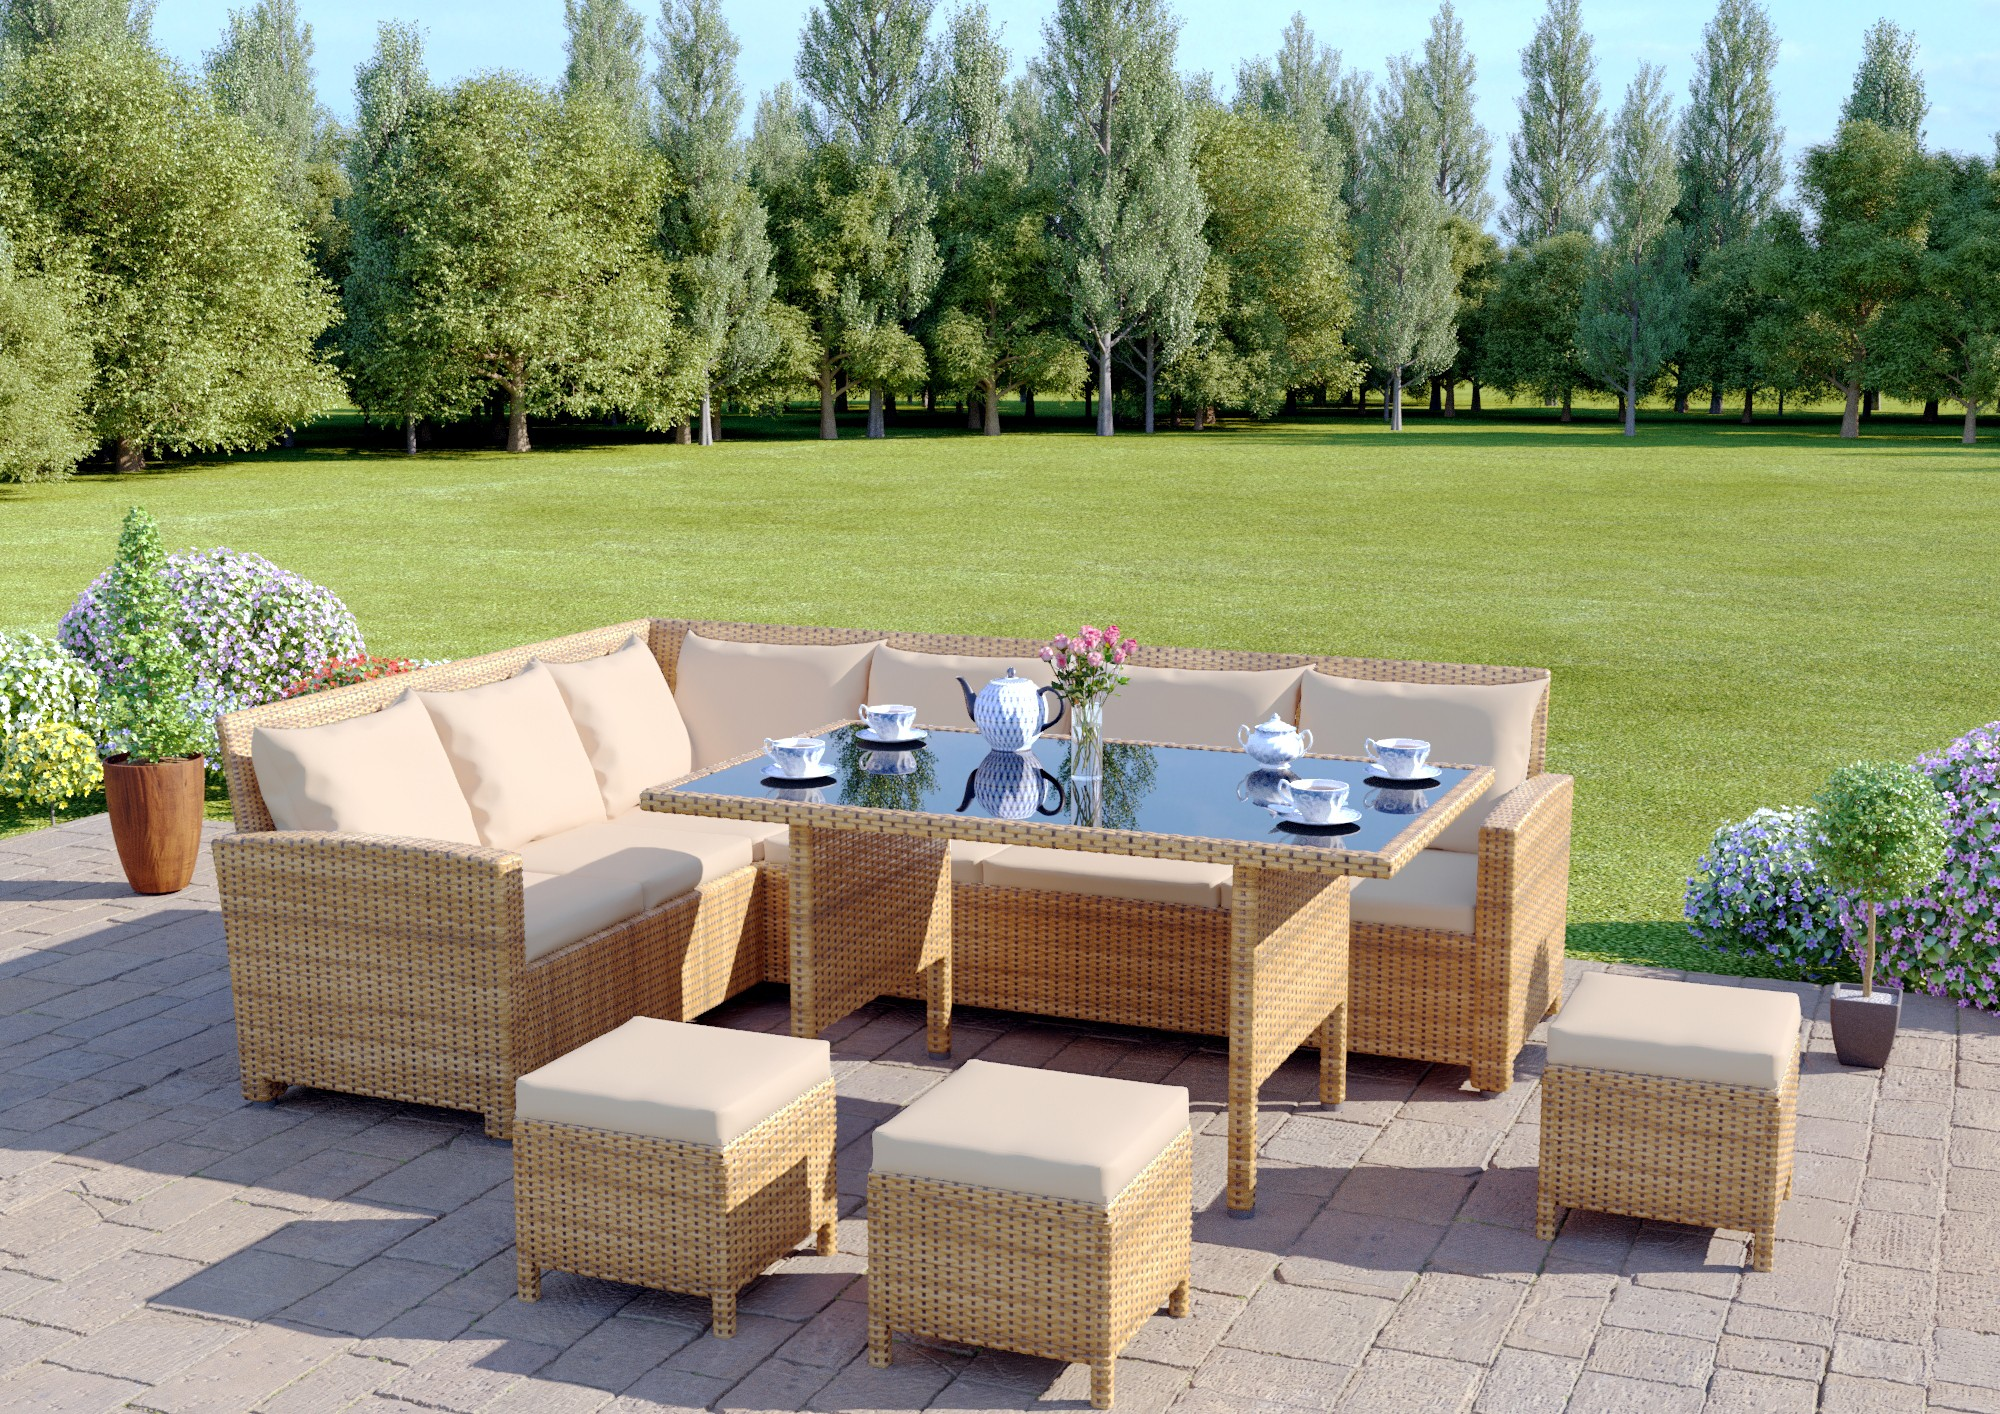 rattan furniture ... 9 seat light brown rattan garden furniture corner sofa dining AJYUKOS